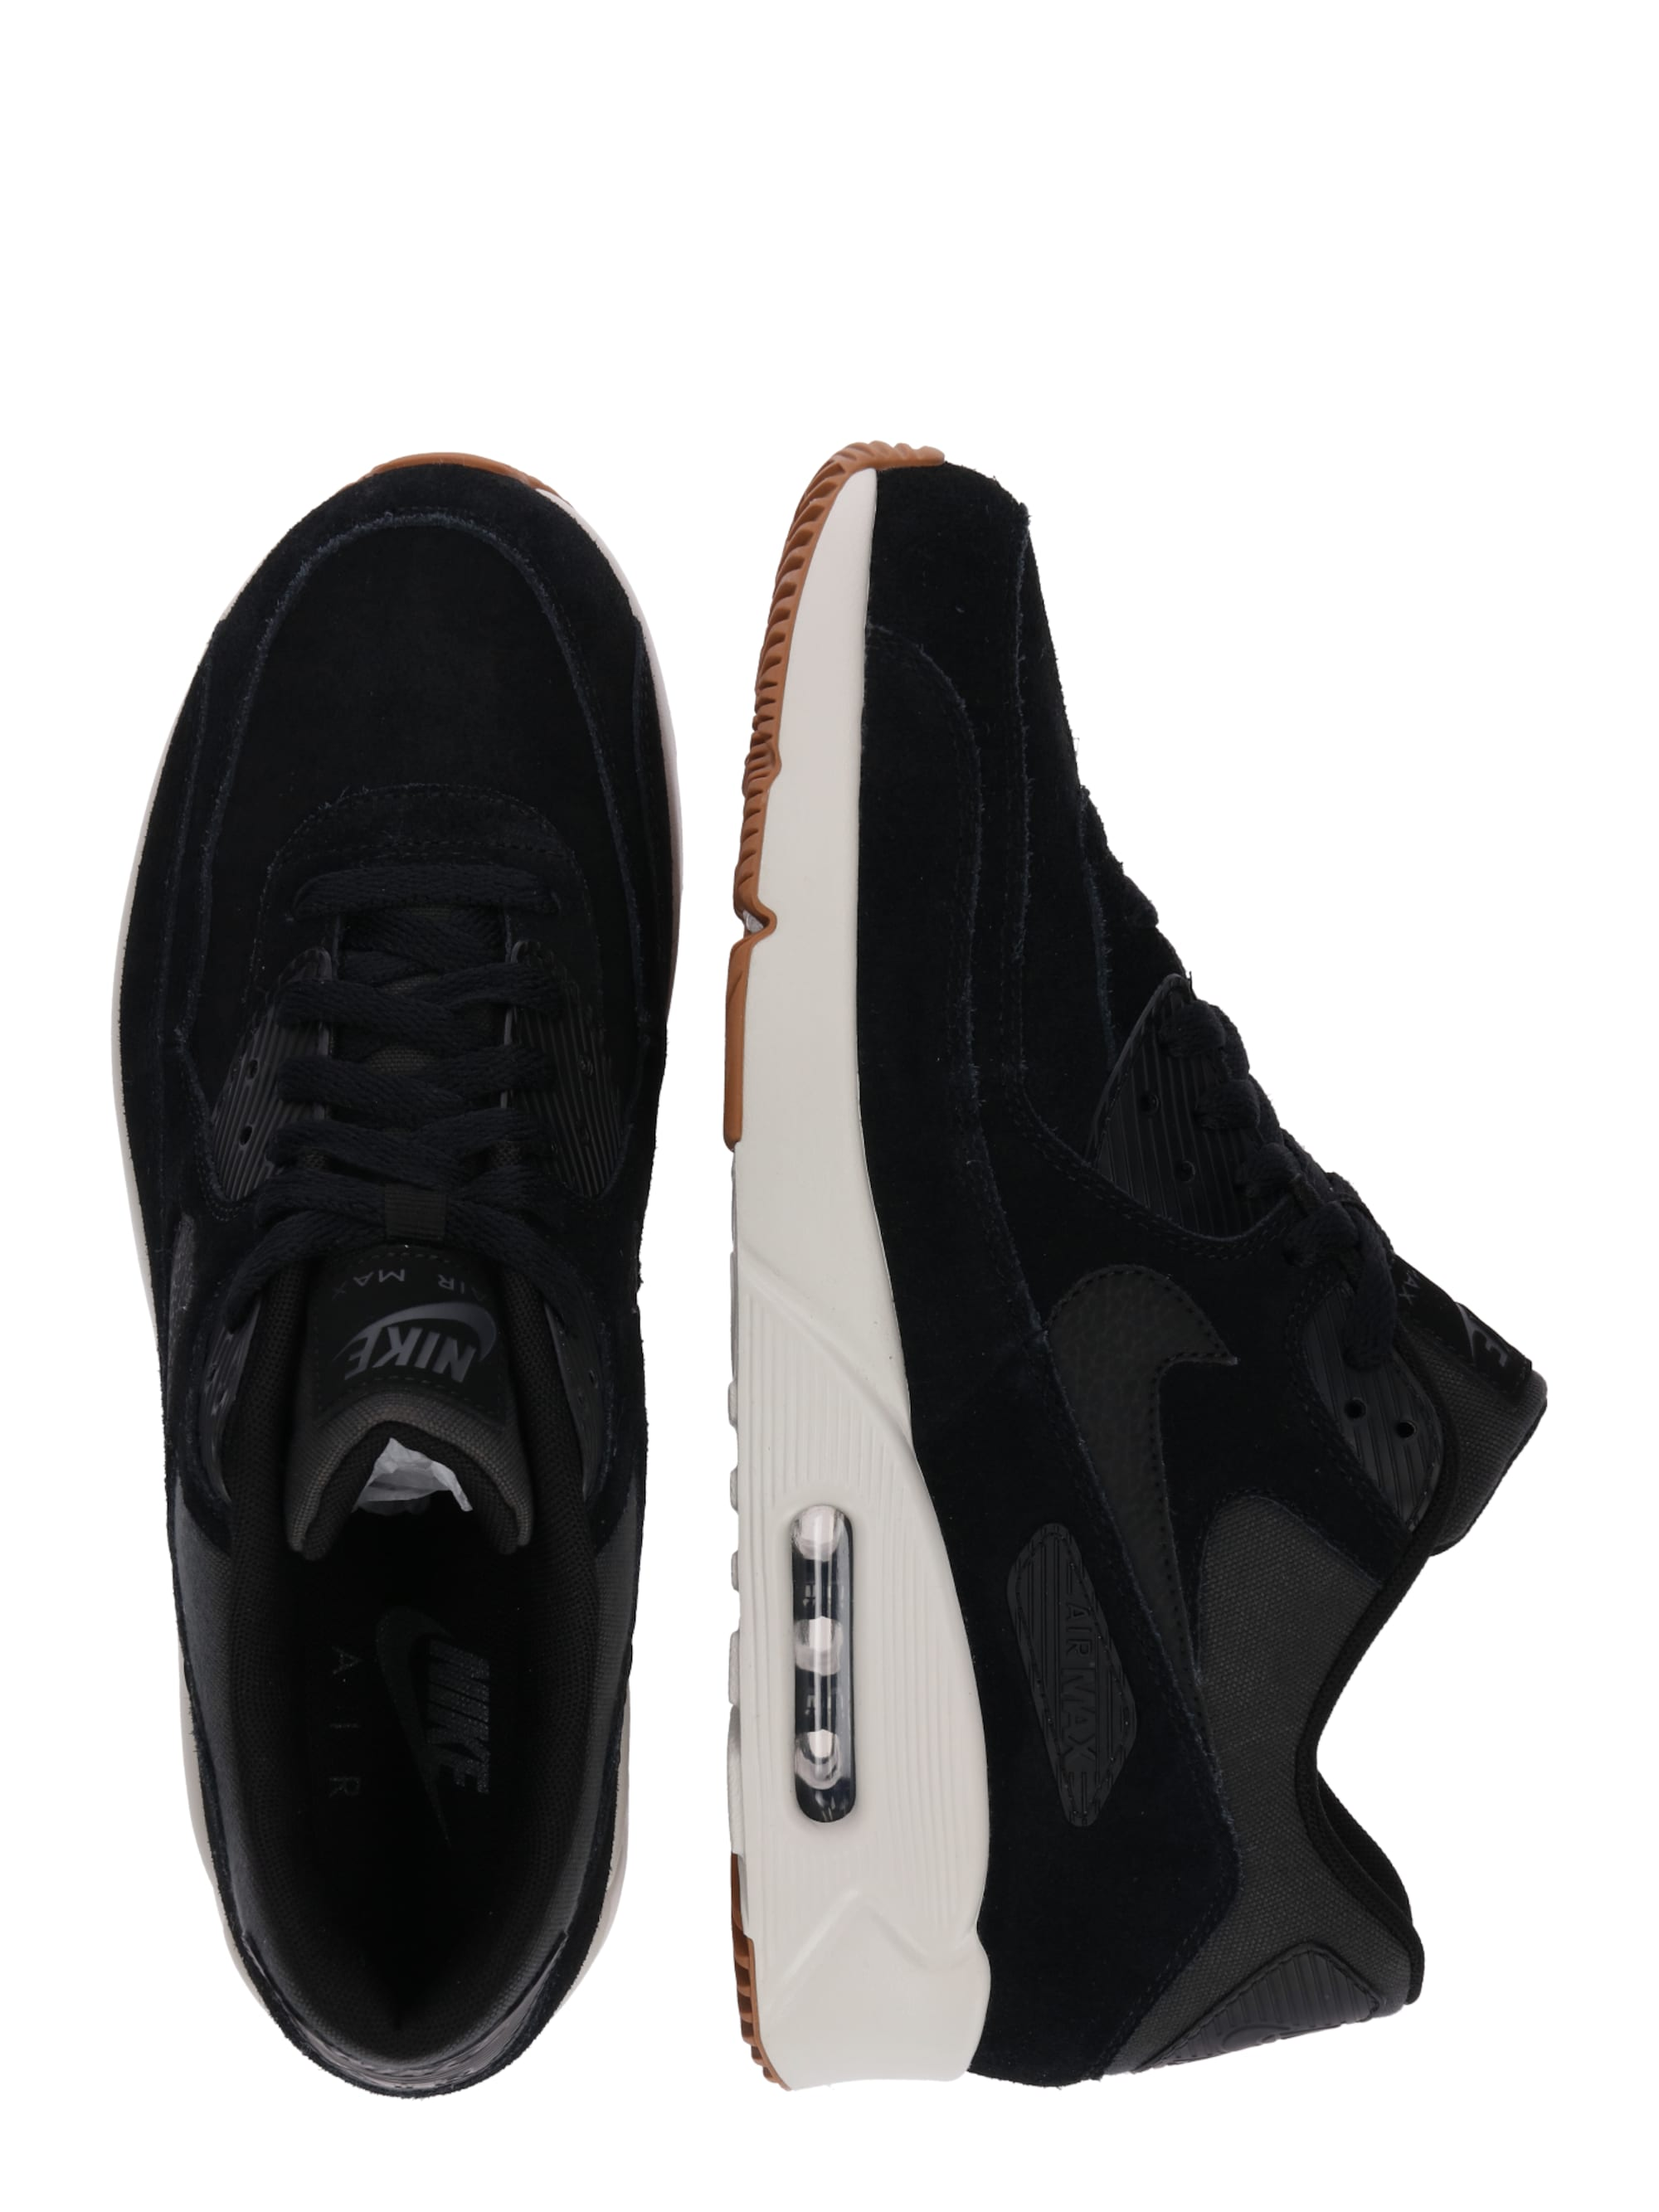 Sneakers laag 'Air max 90 ultra 2.0 ltr'